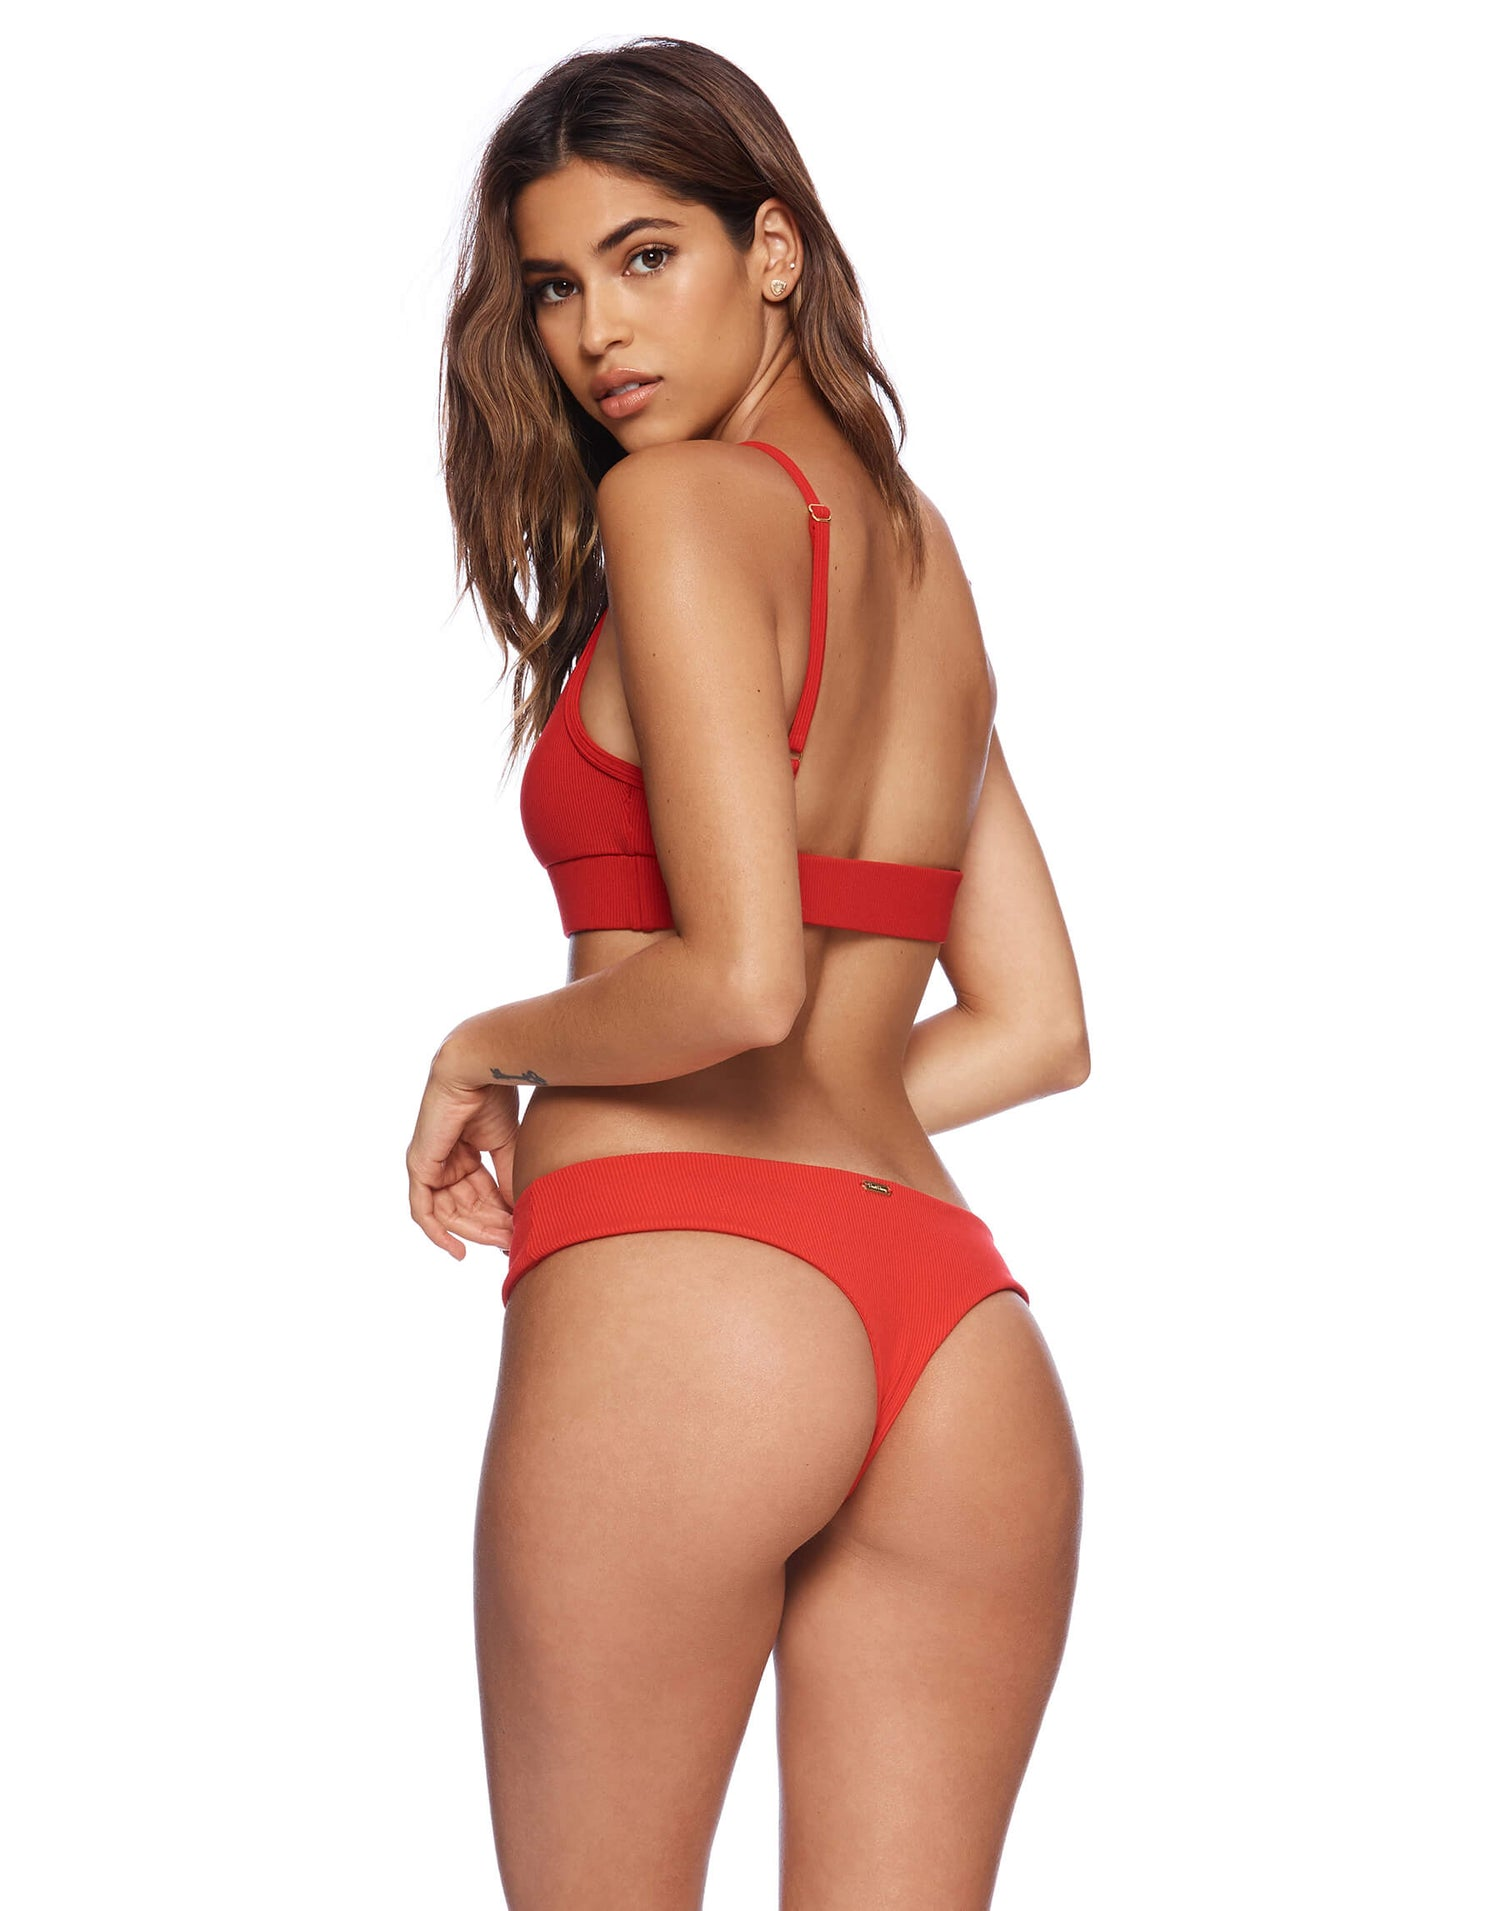 Rib Tide Bralette Bikini Top in Red Rib - back view